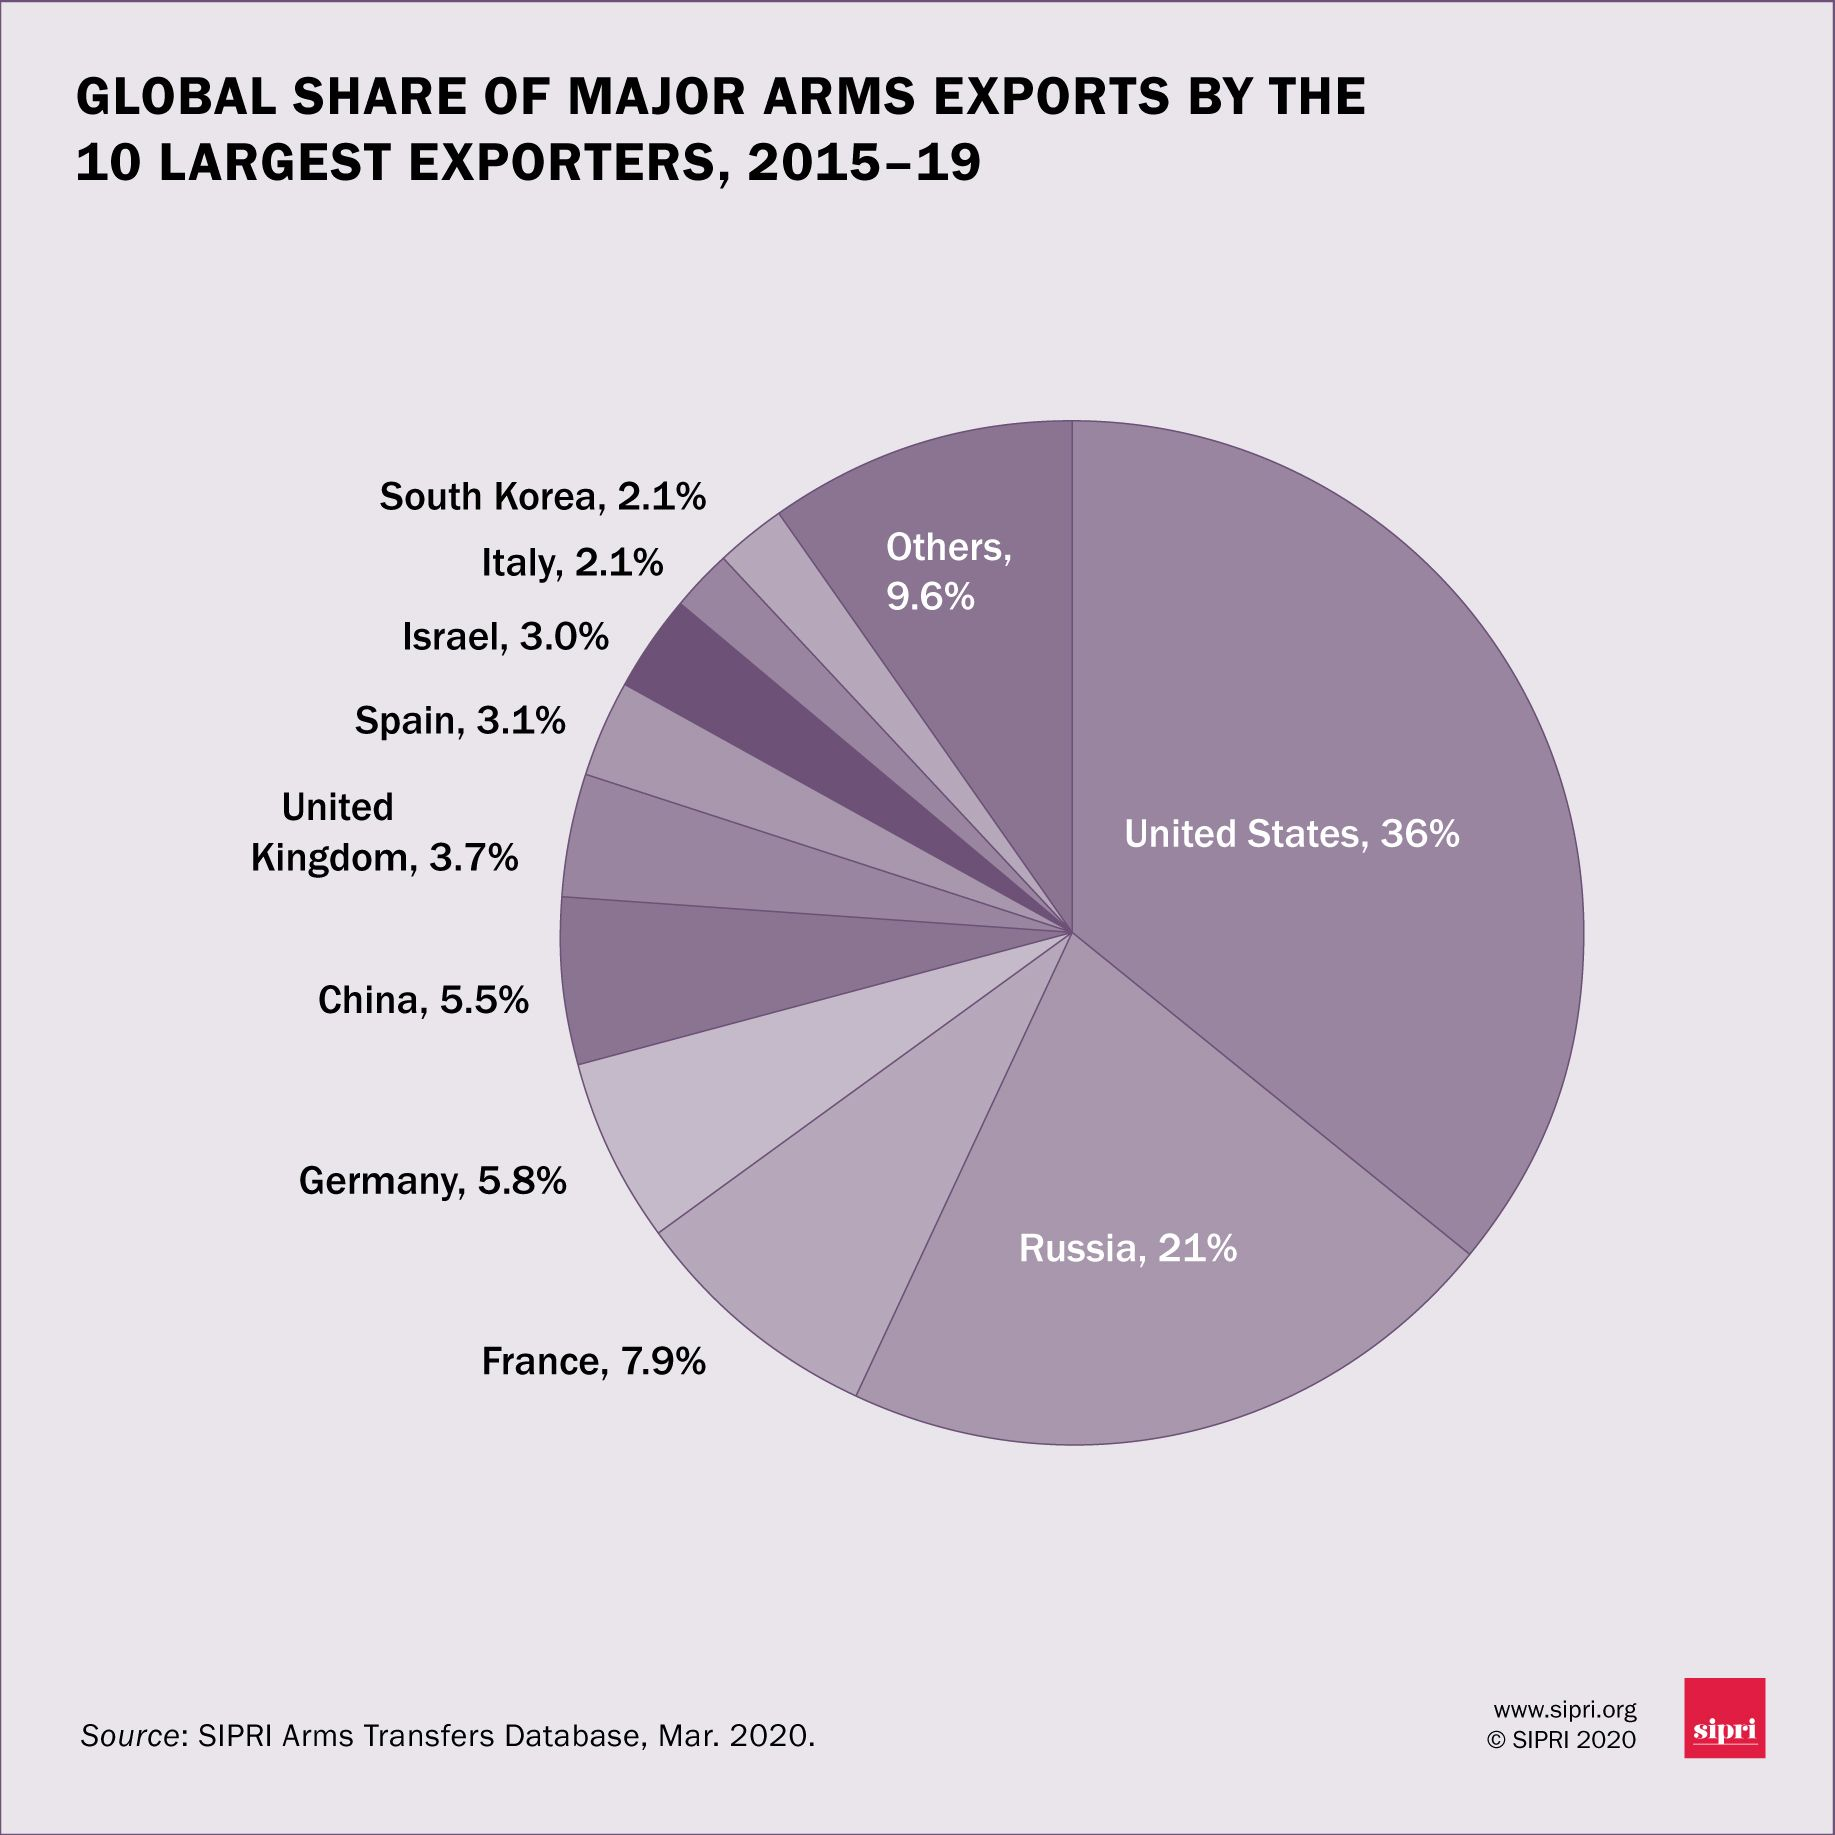 global share of major arms exports 2015-2019